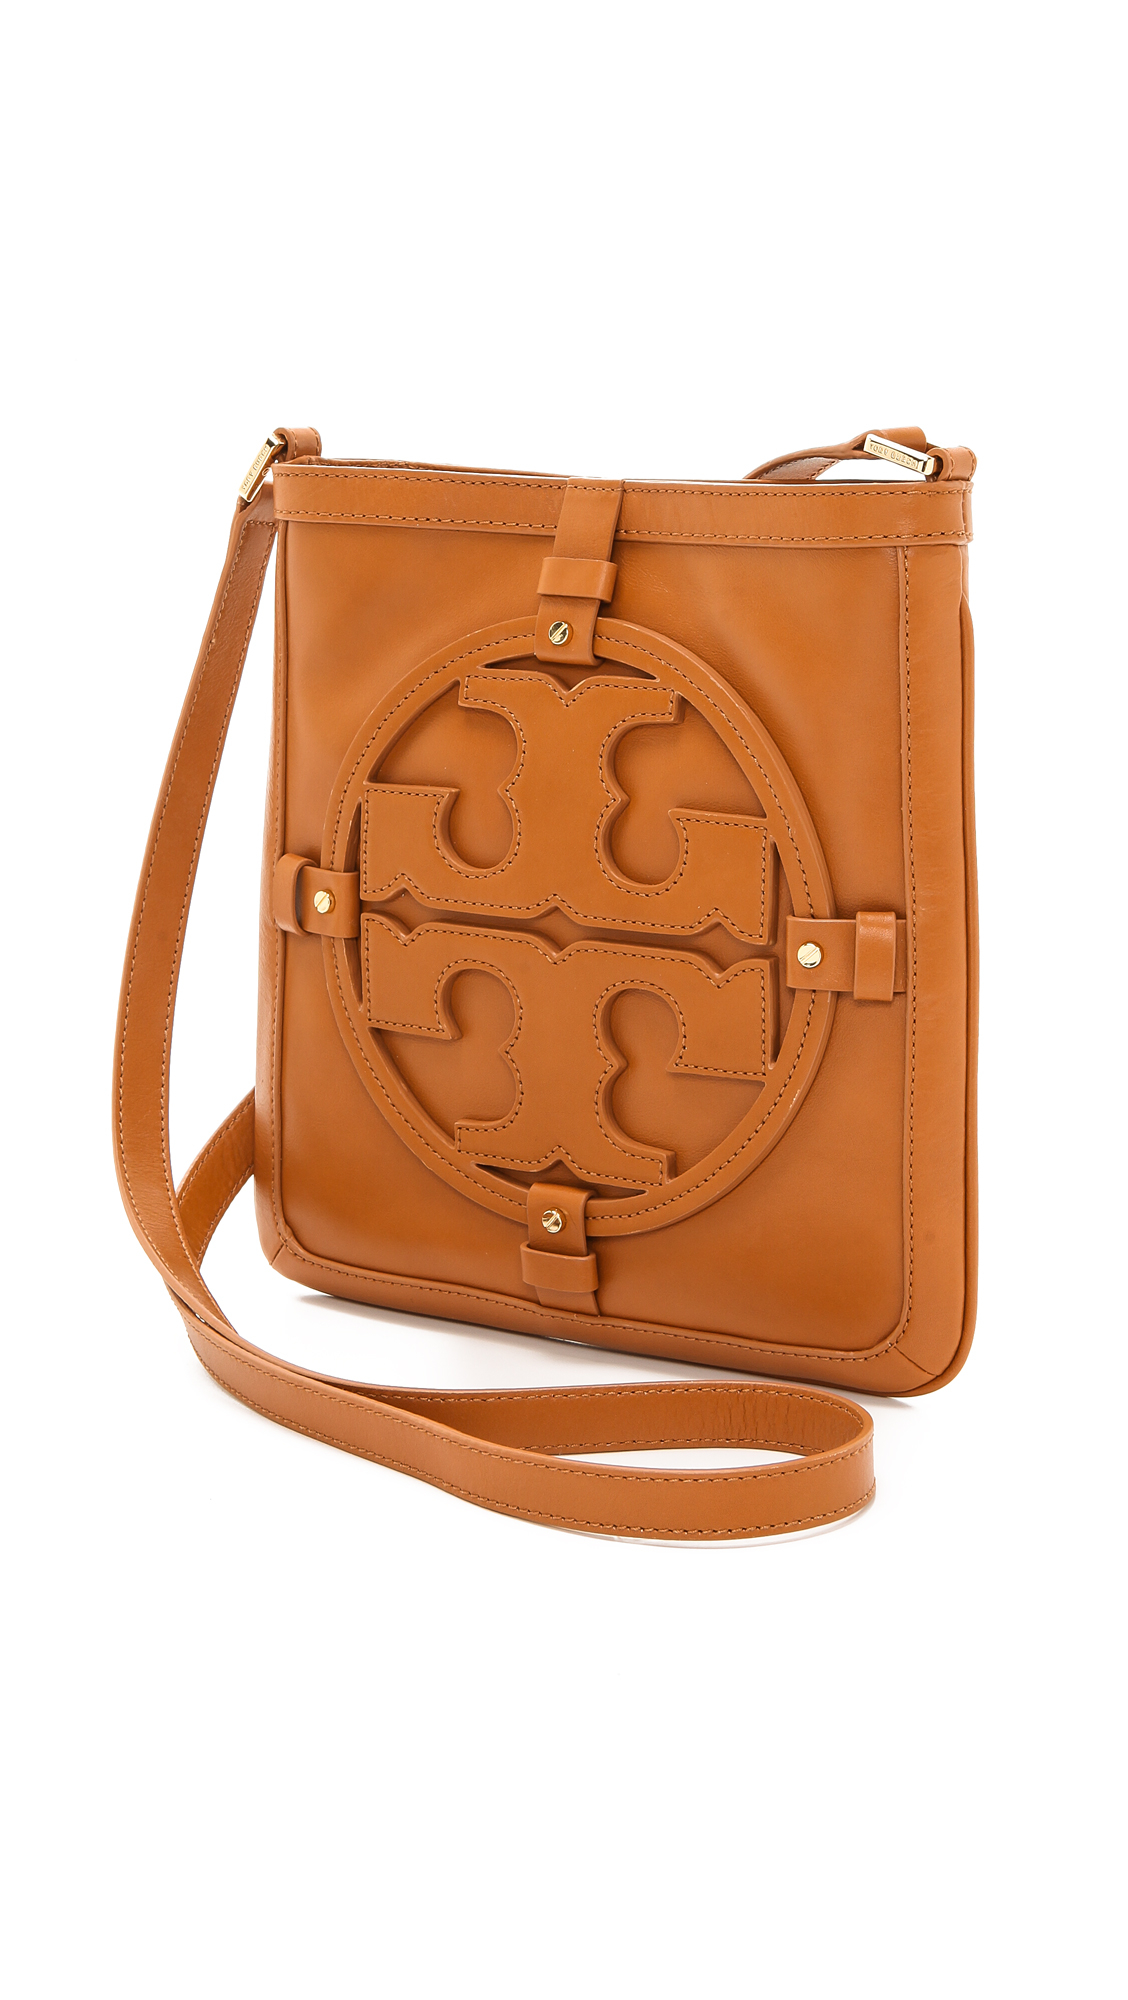 Tory Burch Holly Book Bag In Brown